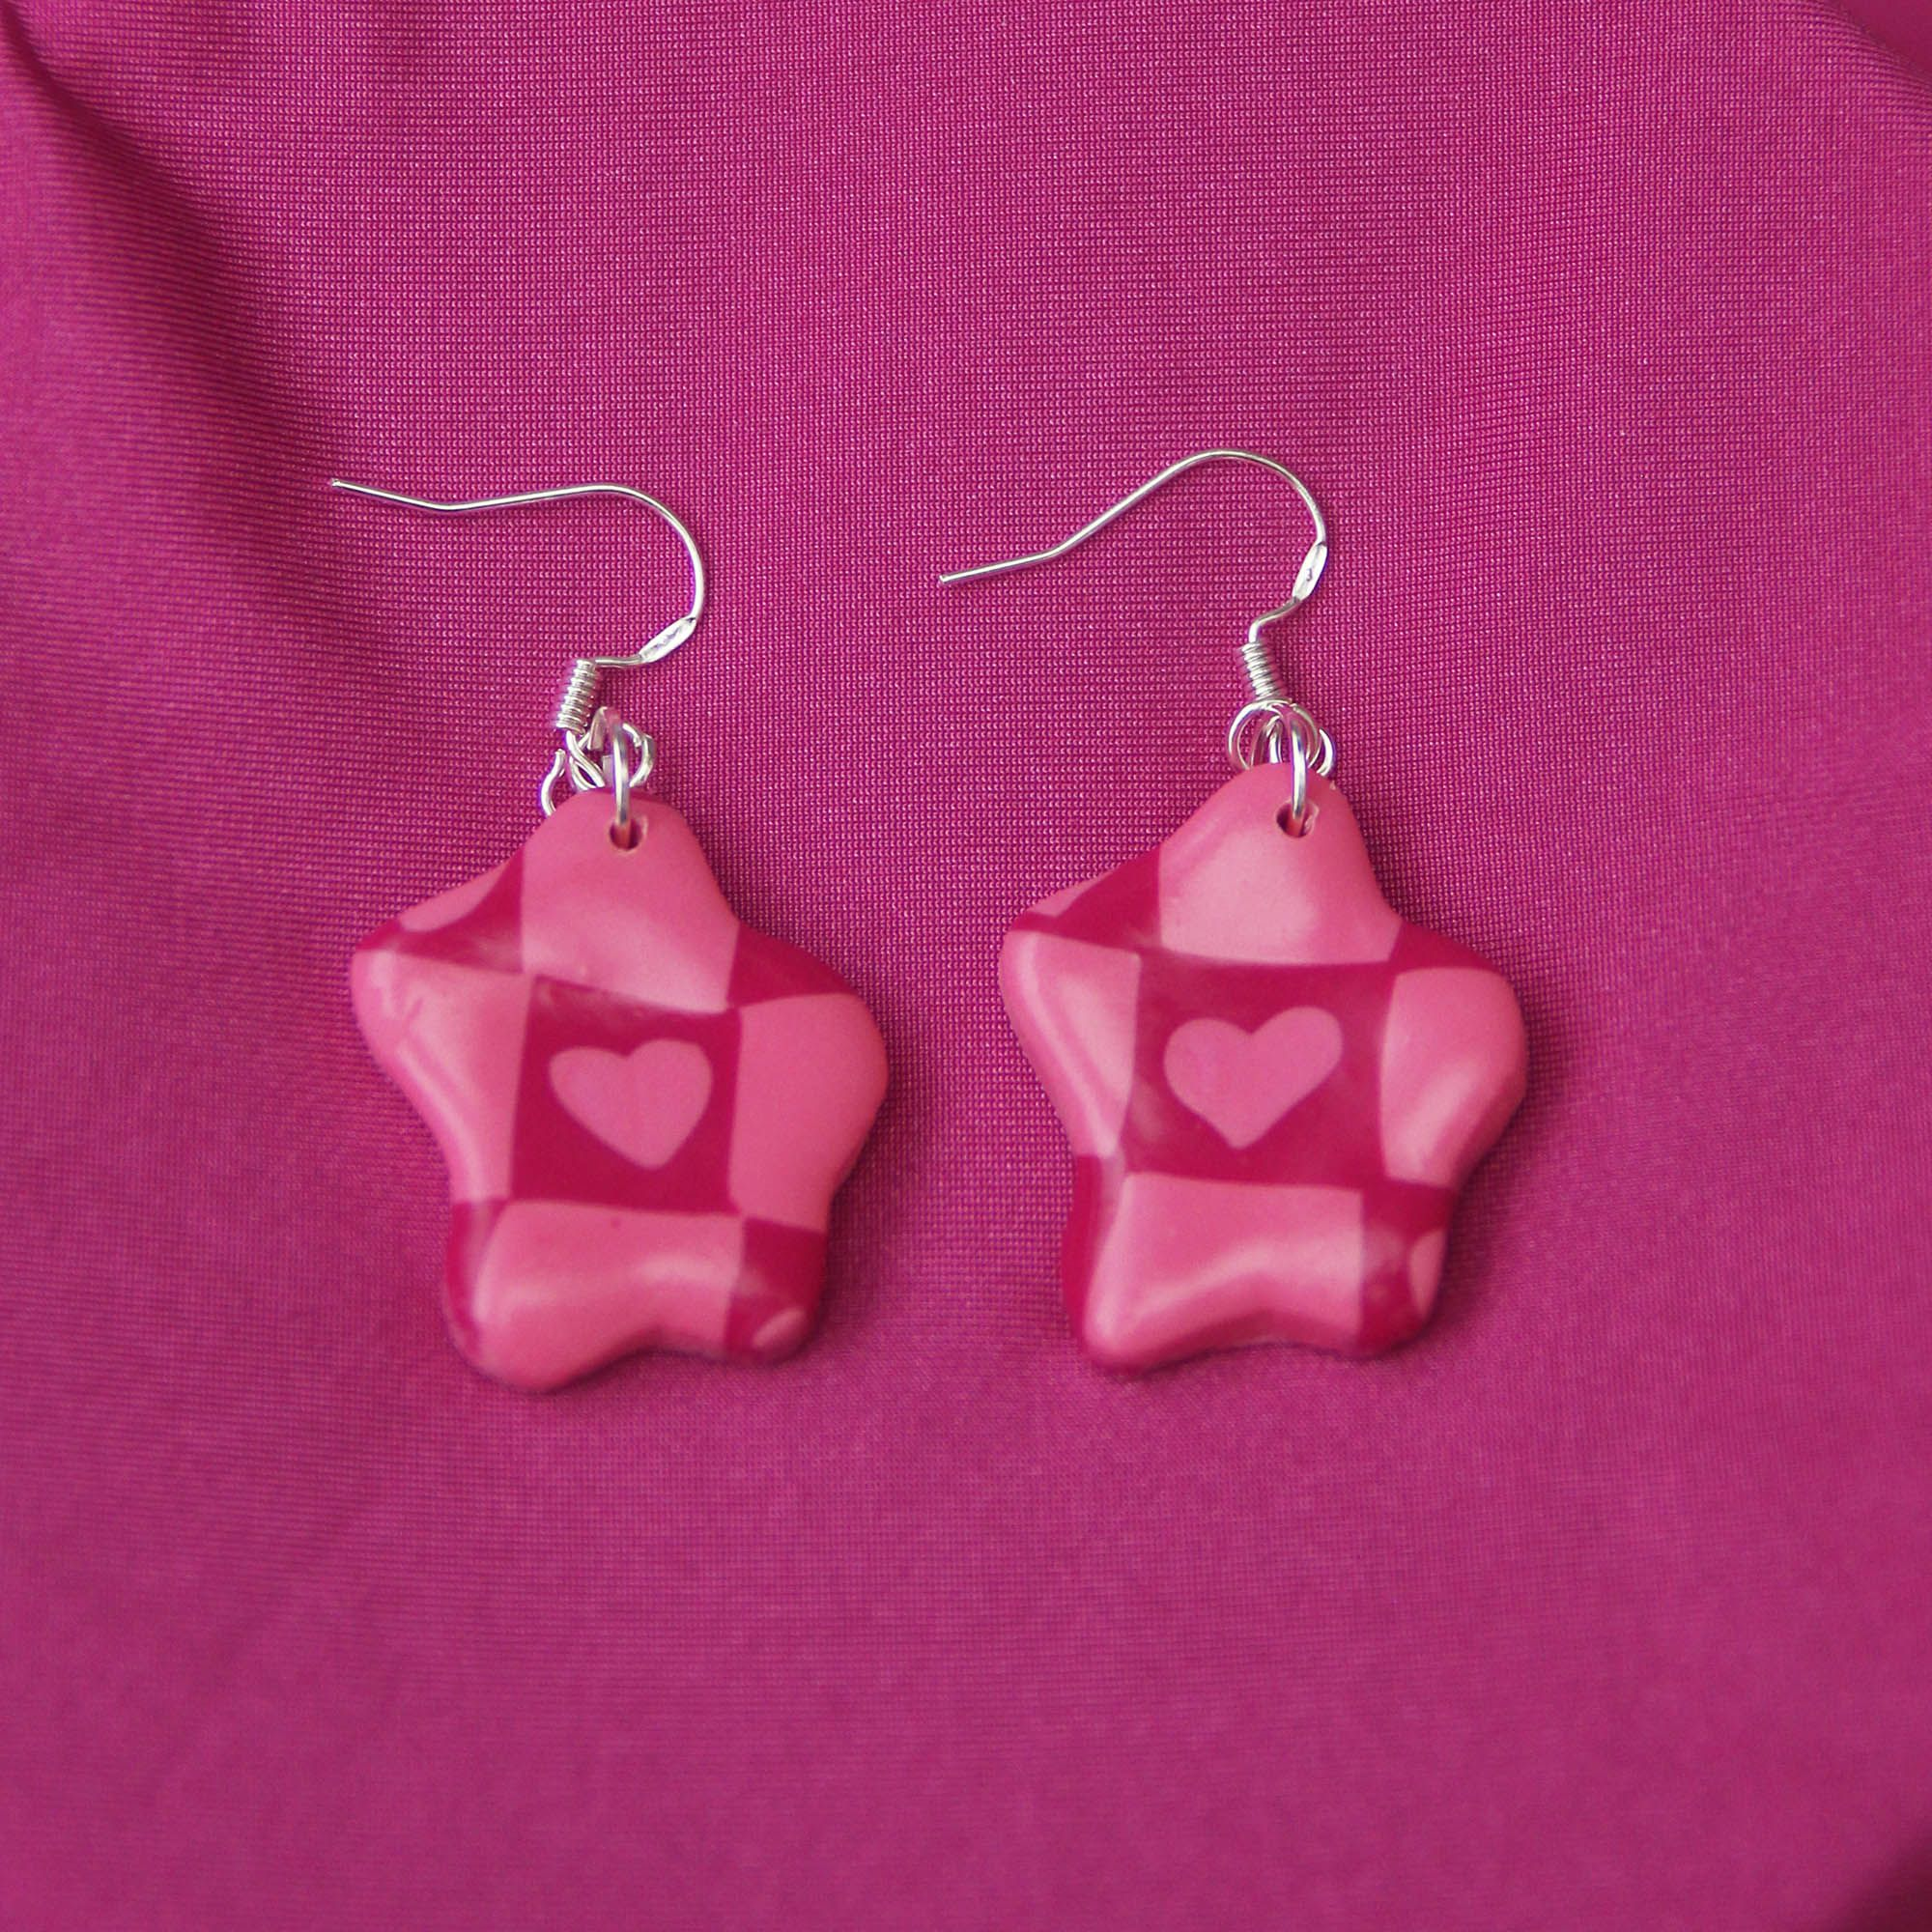 Handmade Earrings - Valentine's Day Collection